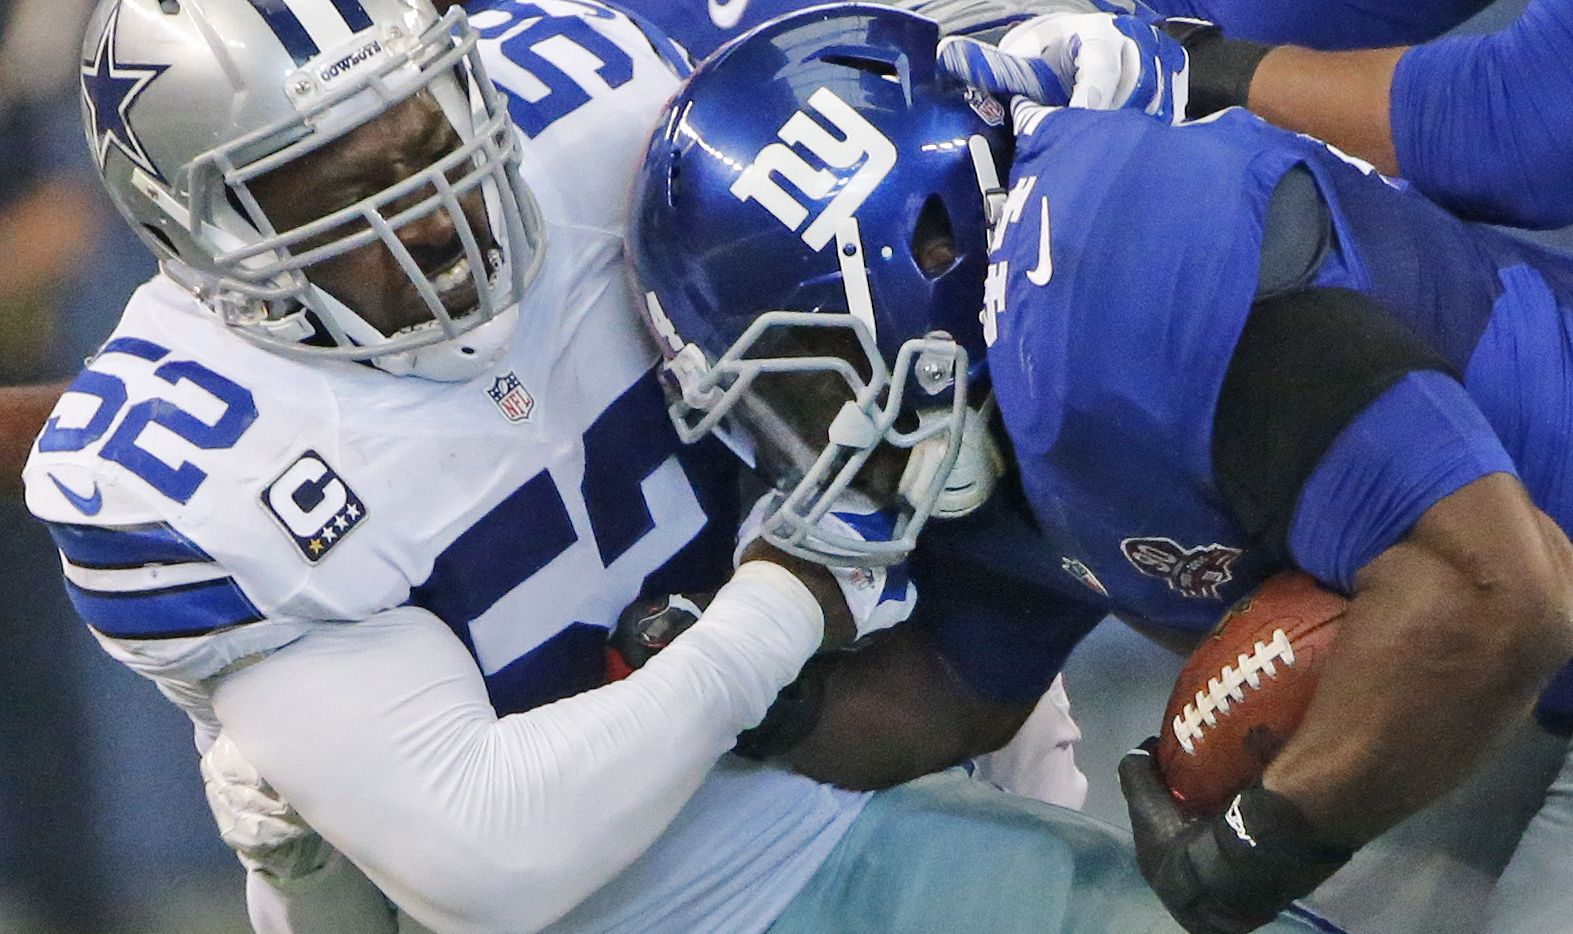 Dallas Cowboys outside linebacker Justin Durant (52) tackles New York Giants running back Andre Williams (44) during the New York Giants vs. the Dallas Cowboys NFL football game at AT&T Stadium in Arlington on Sunday, October 19, 2014.  (Louis DeLuca/The Dallas Morning News)